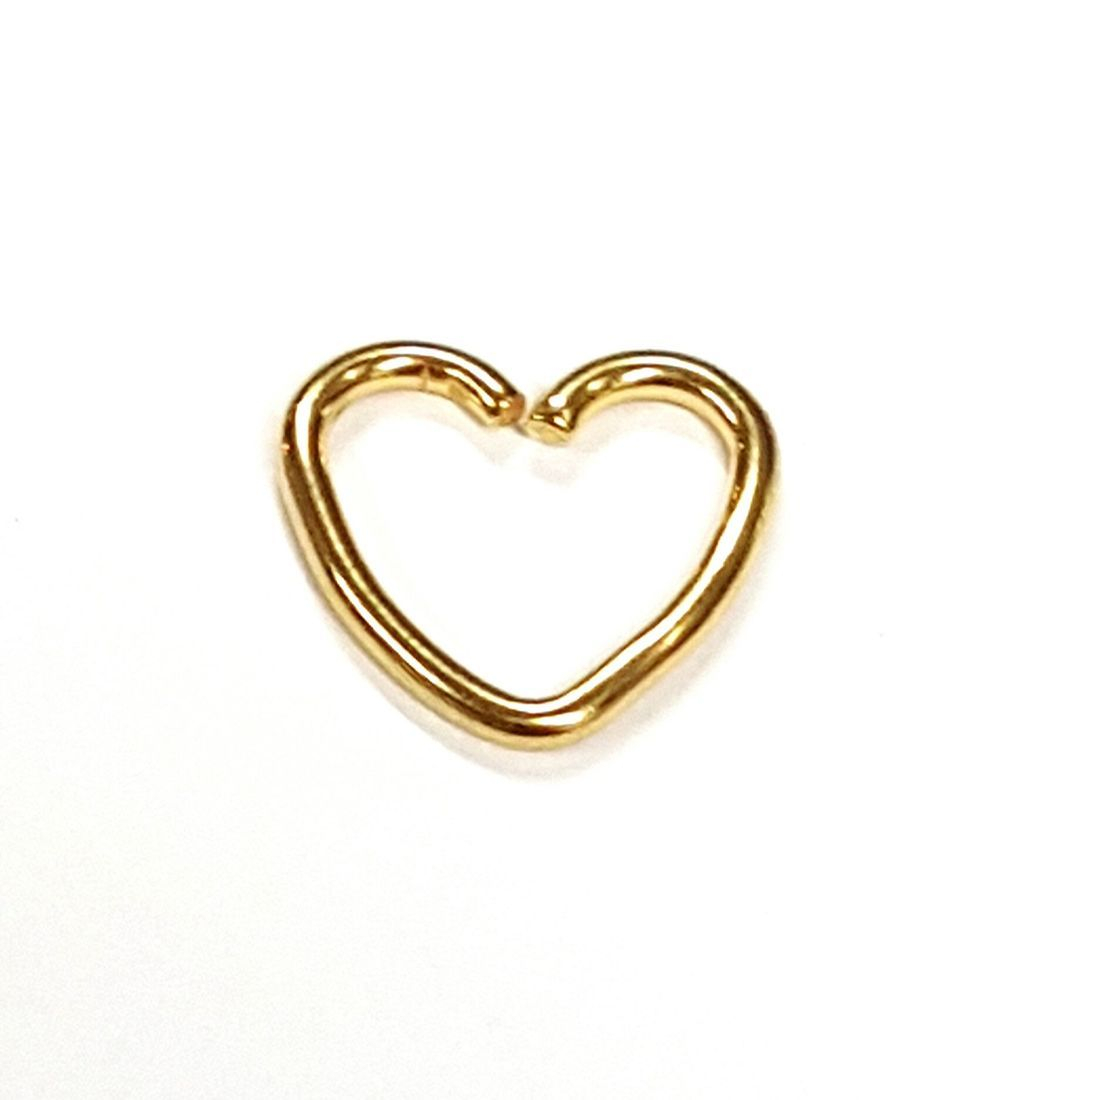 1.2mm x 8mm Gold Heart   available at Kazbah online and our Leicester City Centre Shop